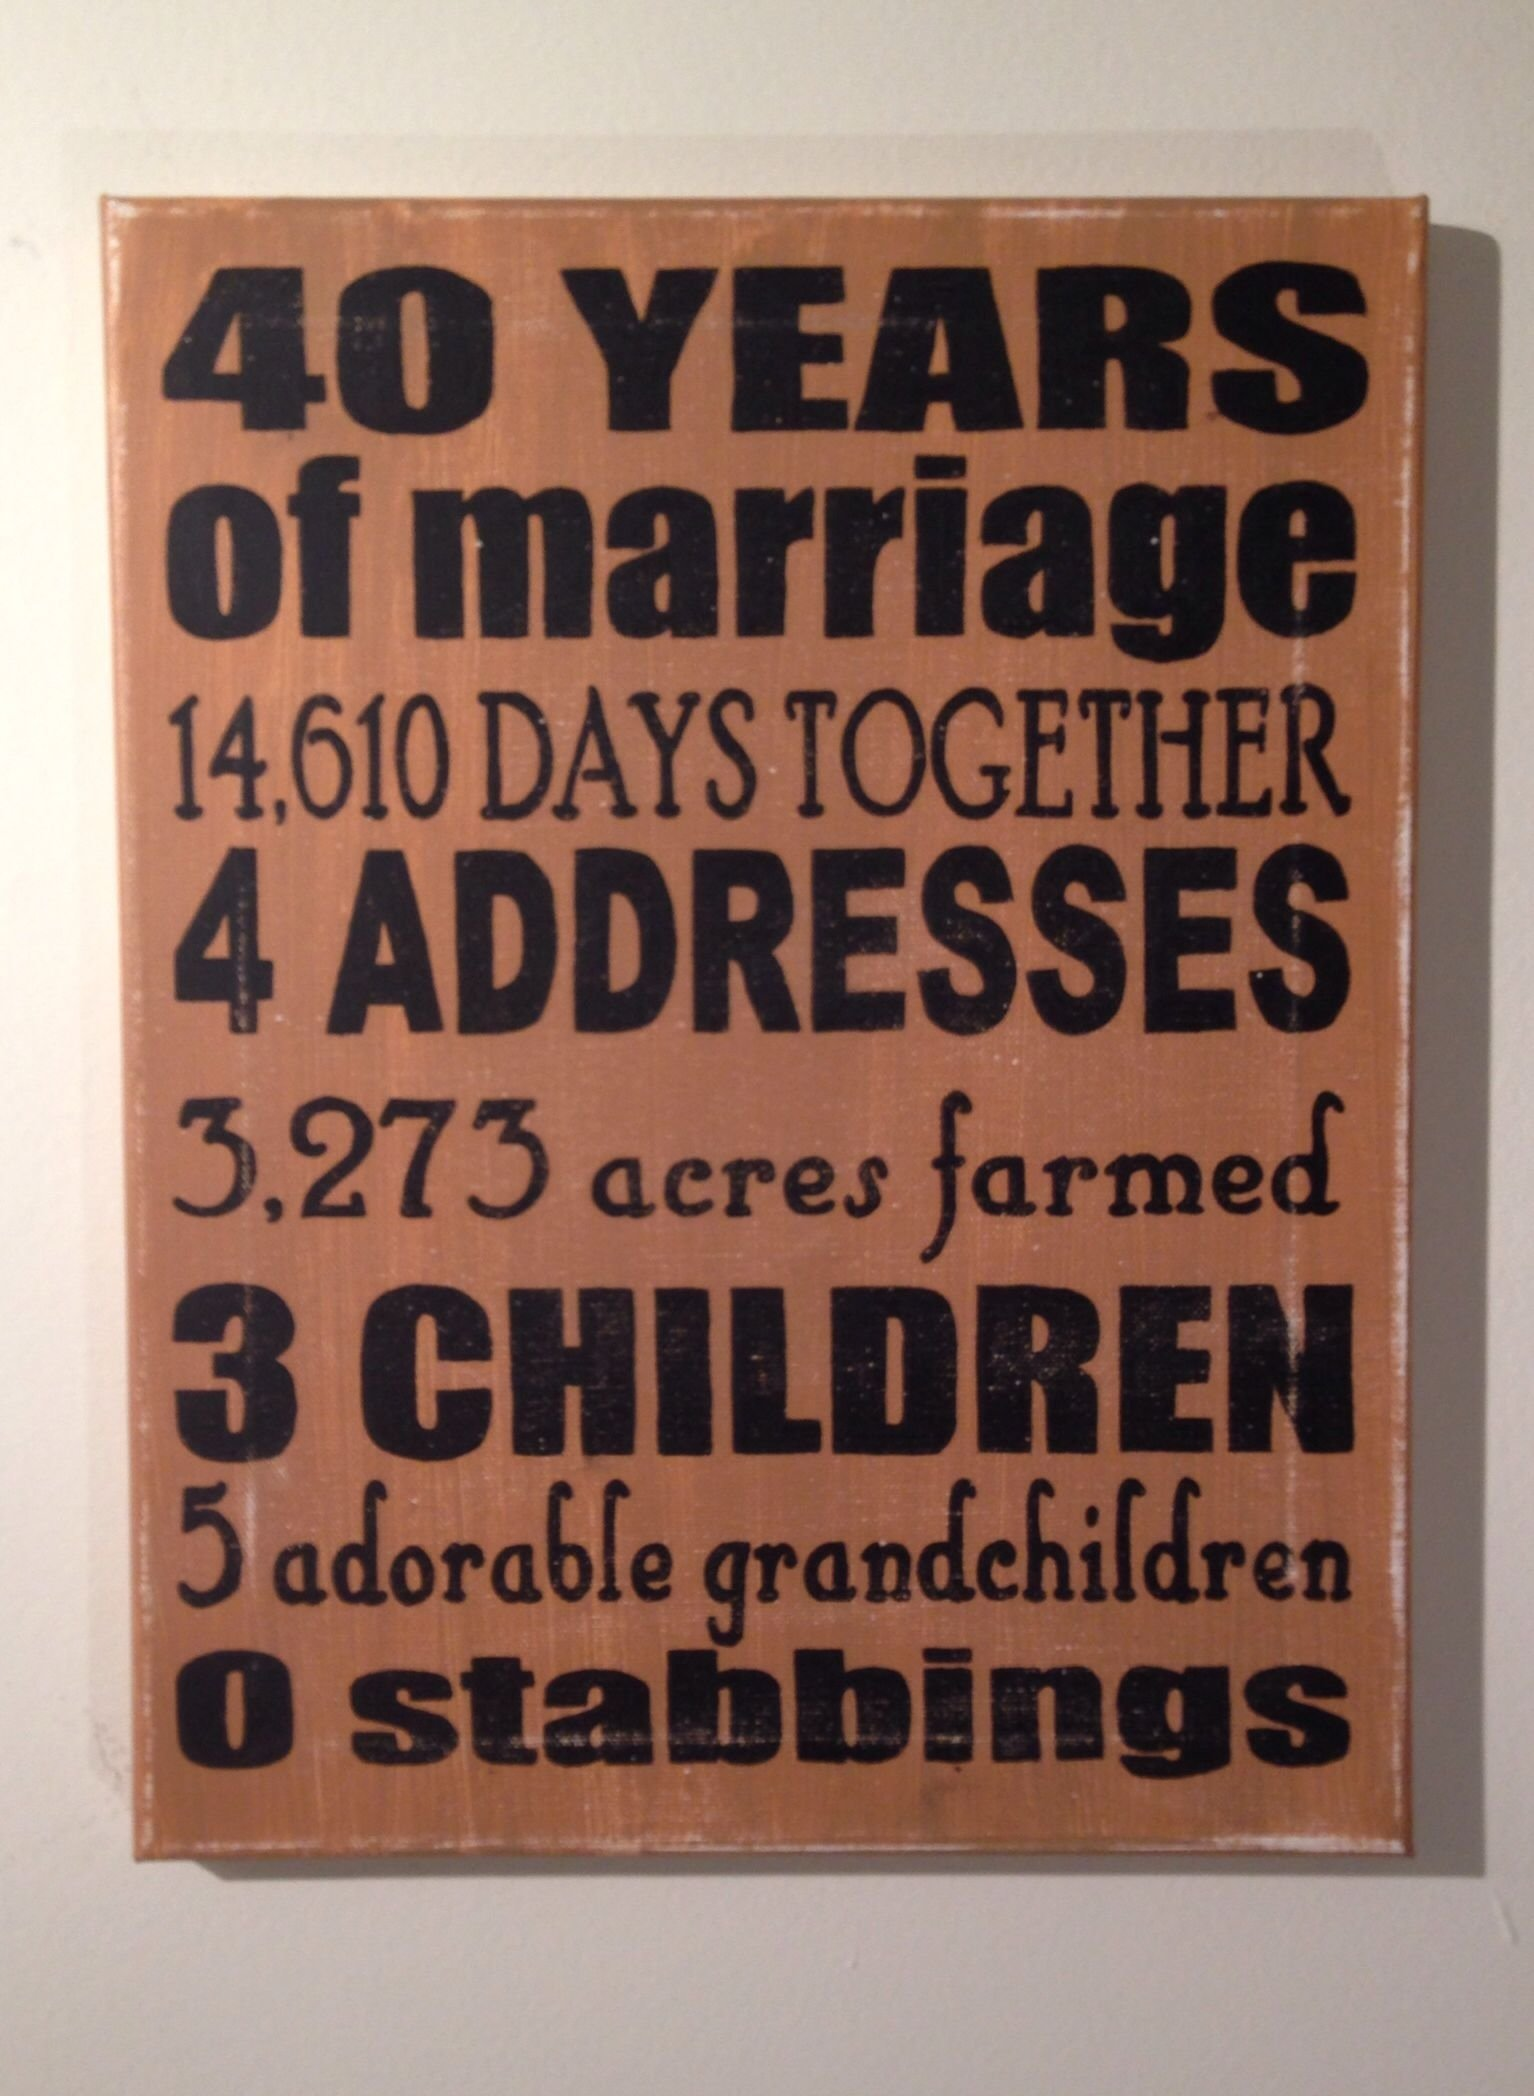 10 Trendy 40Th Wedding Anniversary Gift Ideas For Parents for my parents 40th wedding anniversary add successful 3